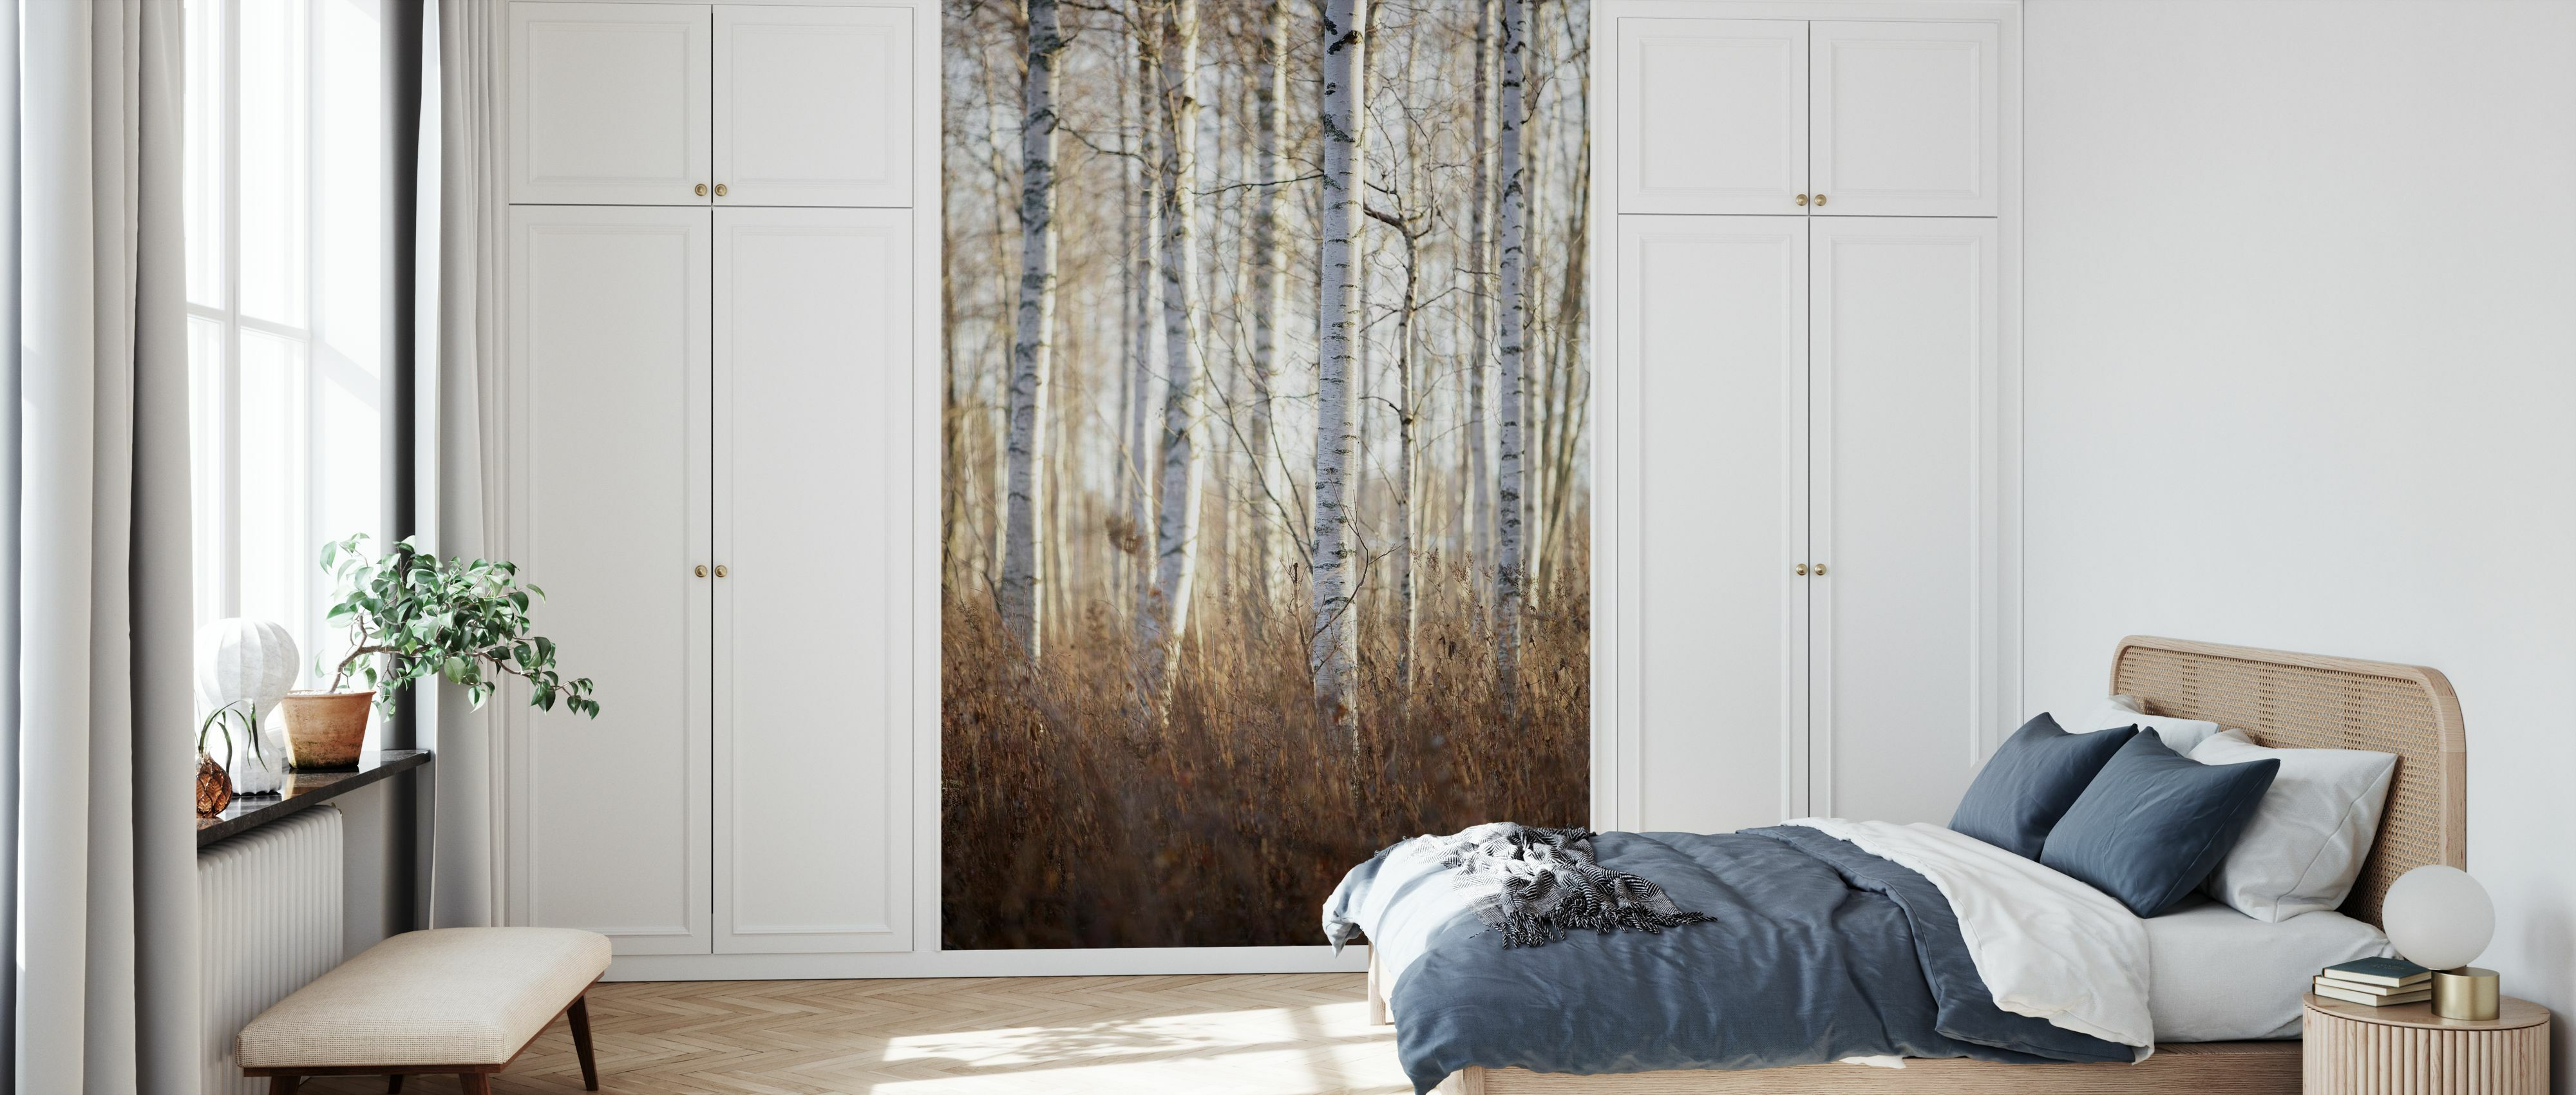 Birch Forest In Dalarna Sweden Europe Beliebte Fototapete Photowall